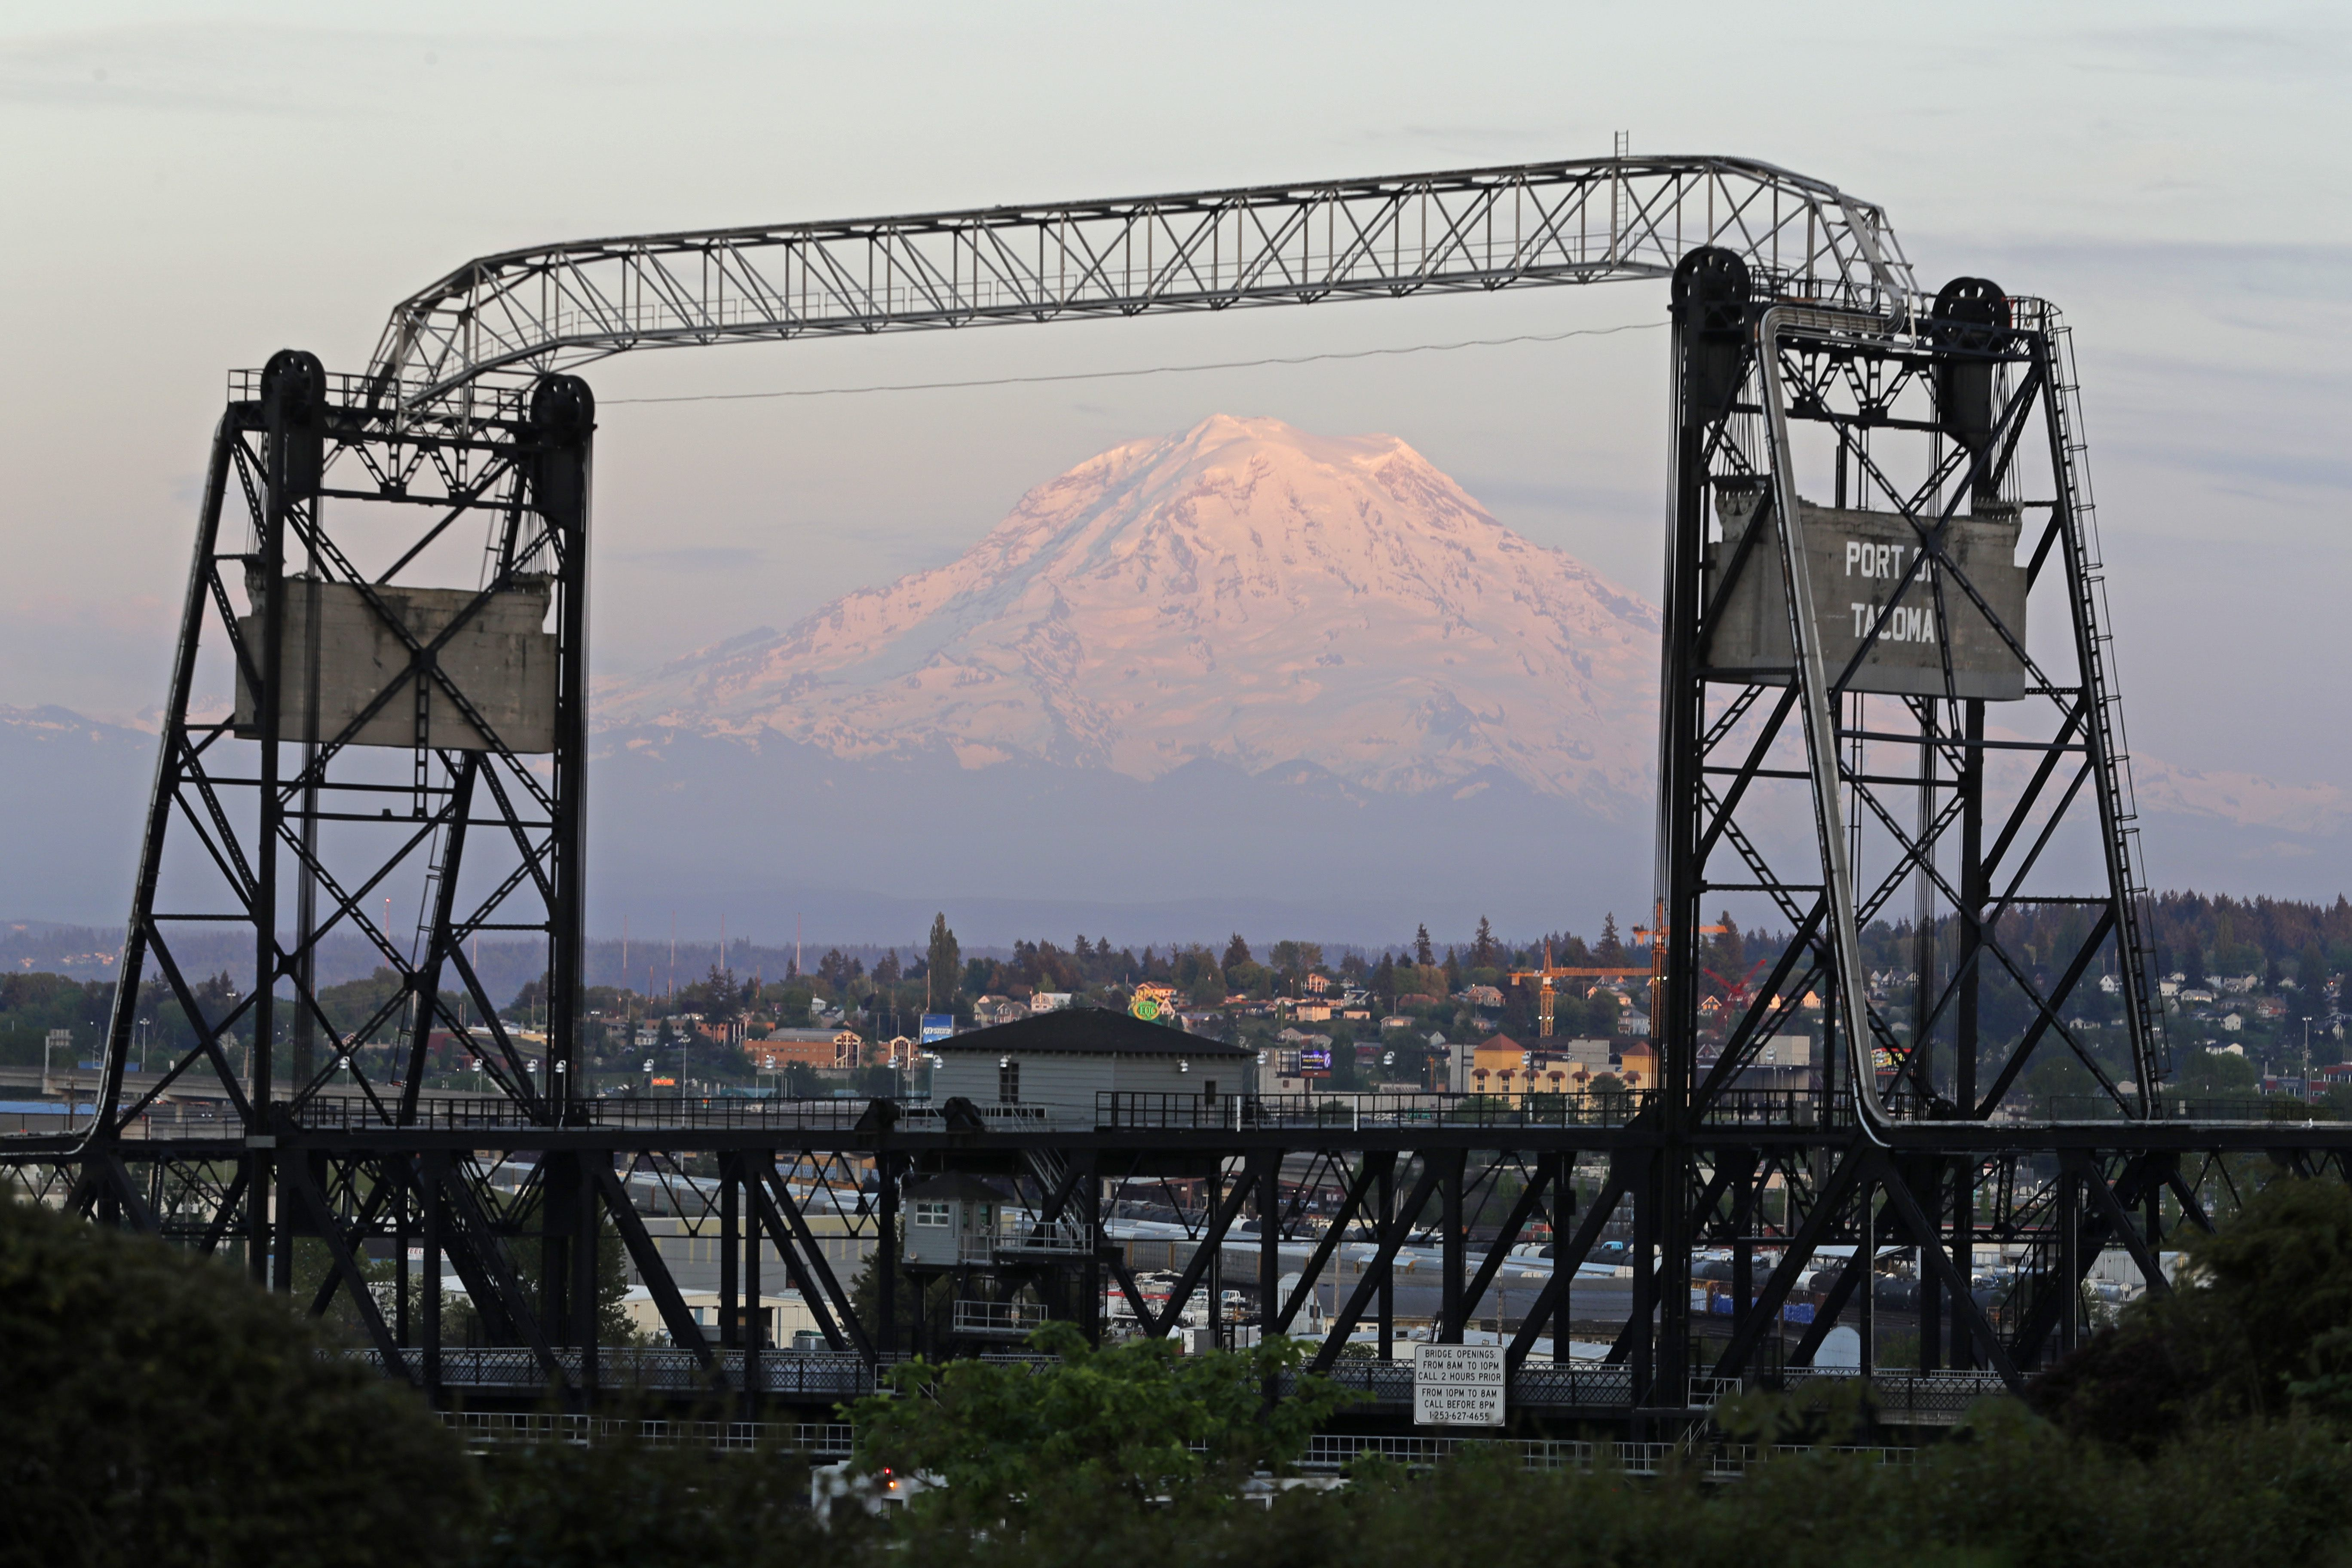 Mount Rainier framed by the Murray Morgan Bridge in downtown Tacoma, Wash. on May 7, 2018. Tacoma is part of Pierce County where several women and Church members are finding unique ways to contribute to their communities.